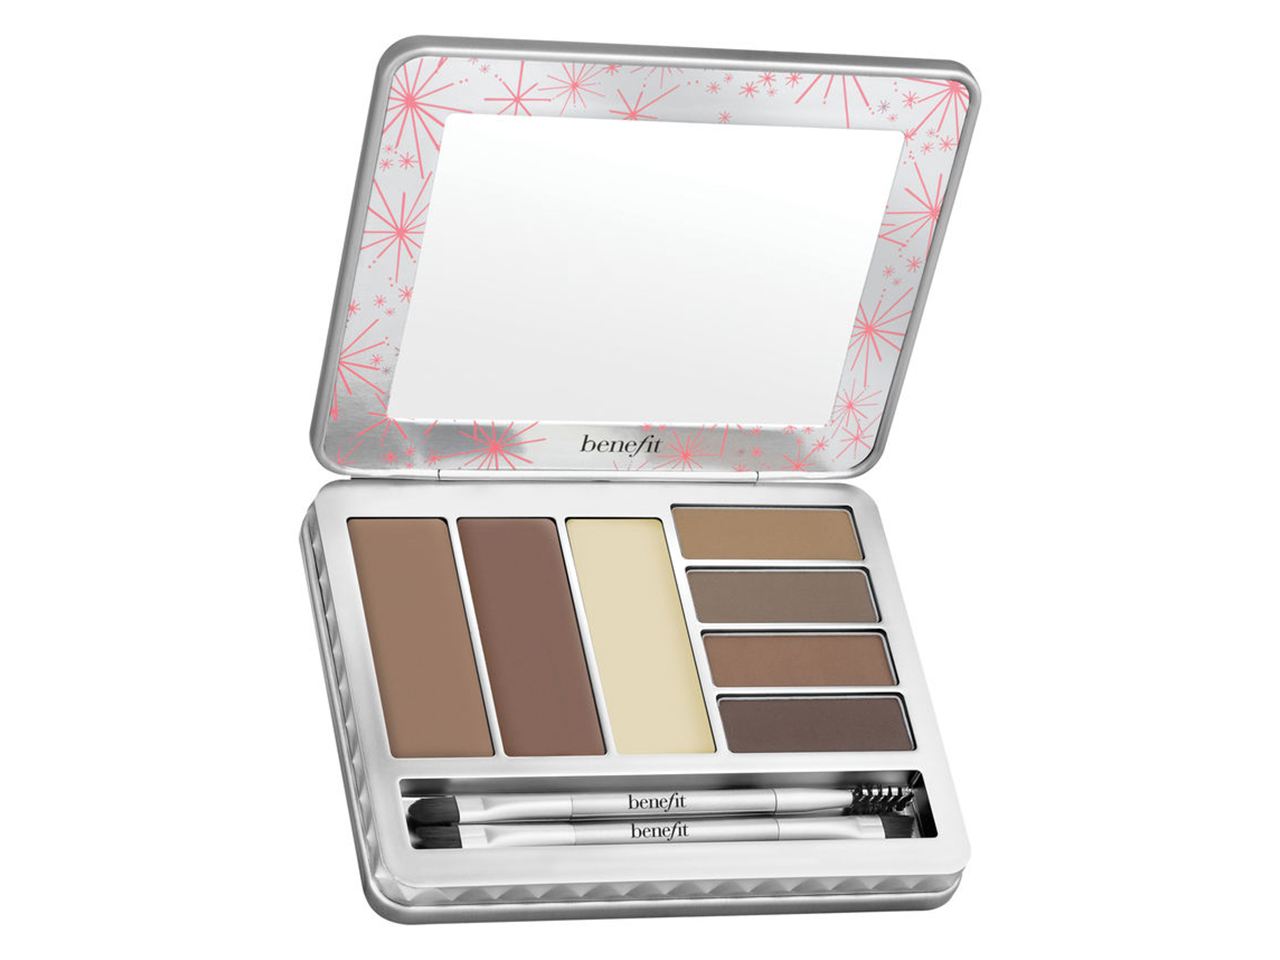 Benefit Cosmetics Brow Zings Pro eyebrow palette